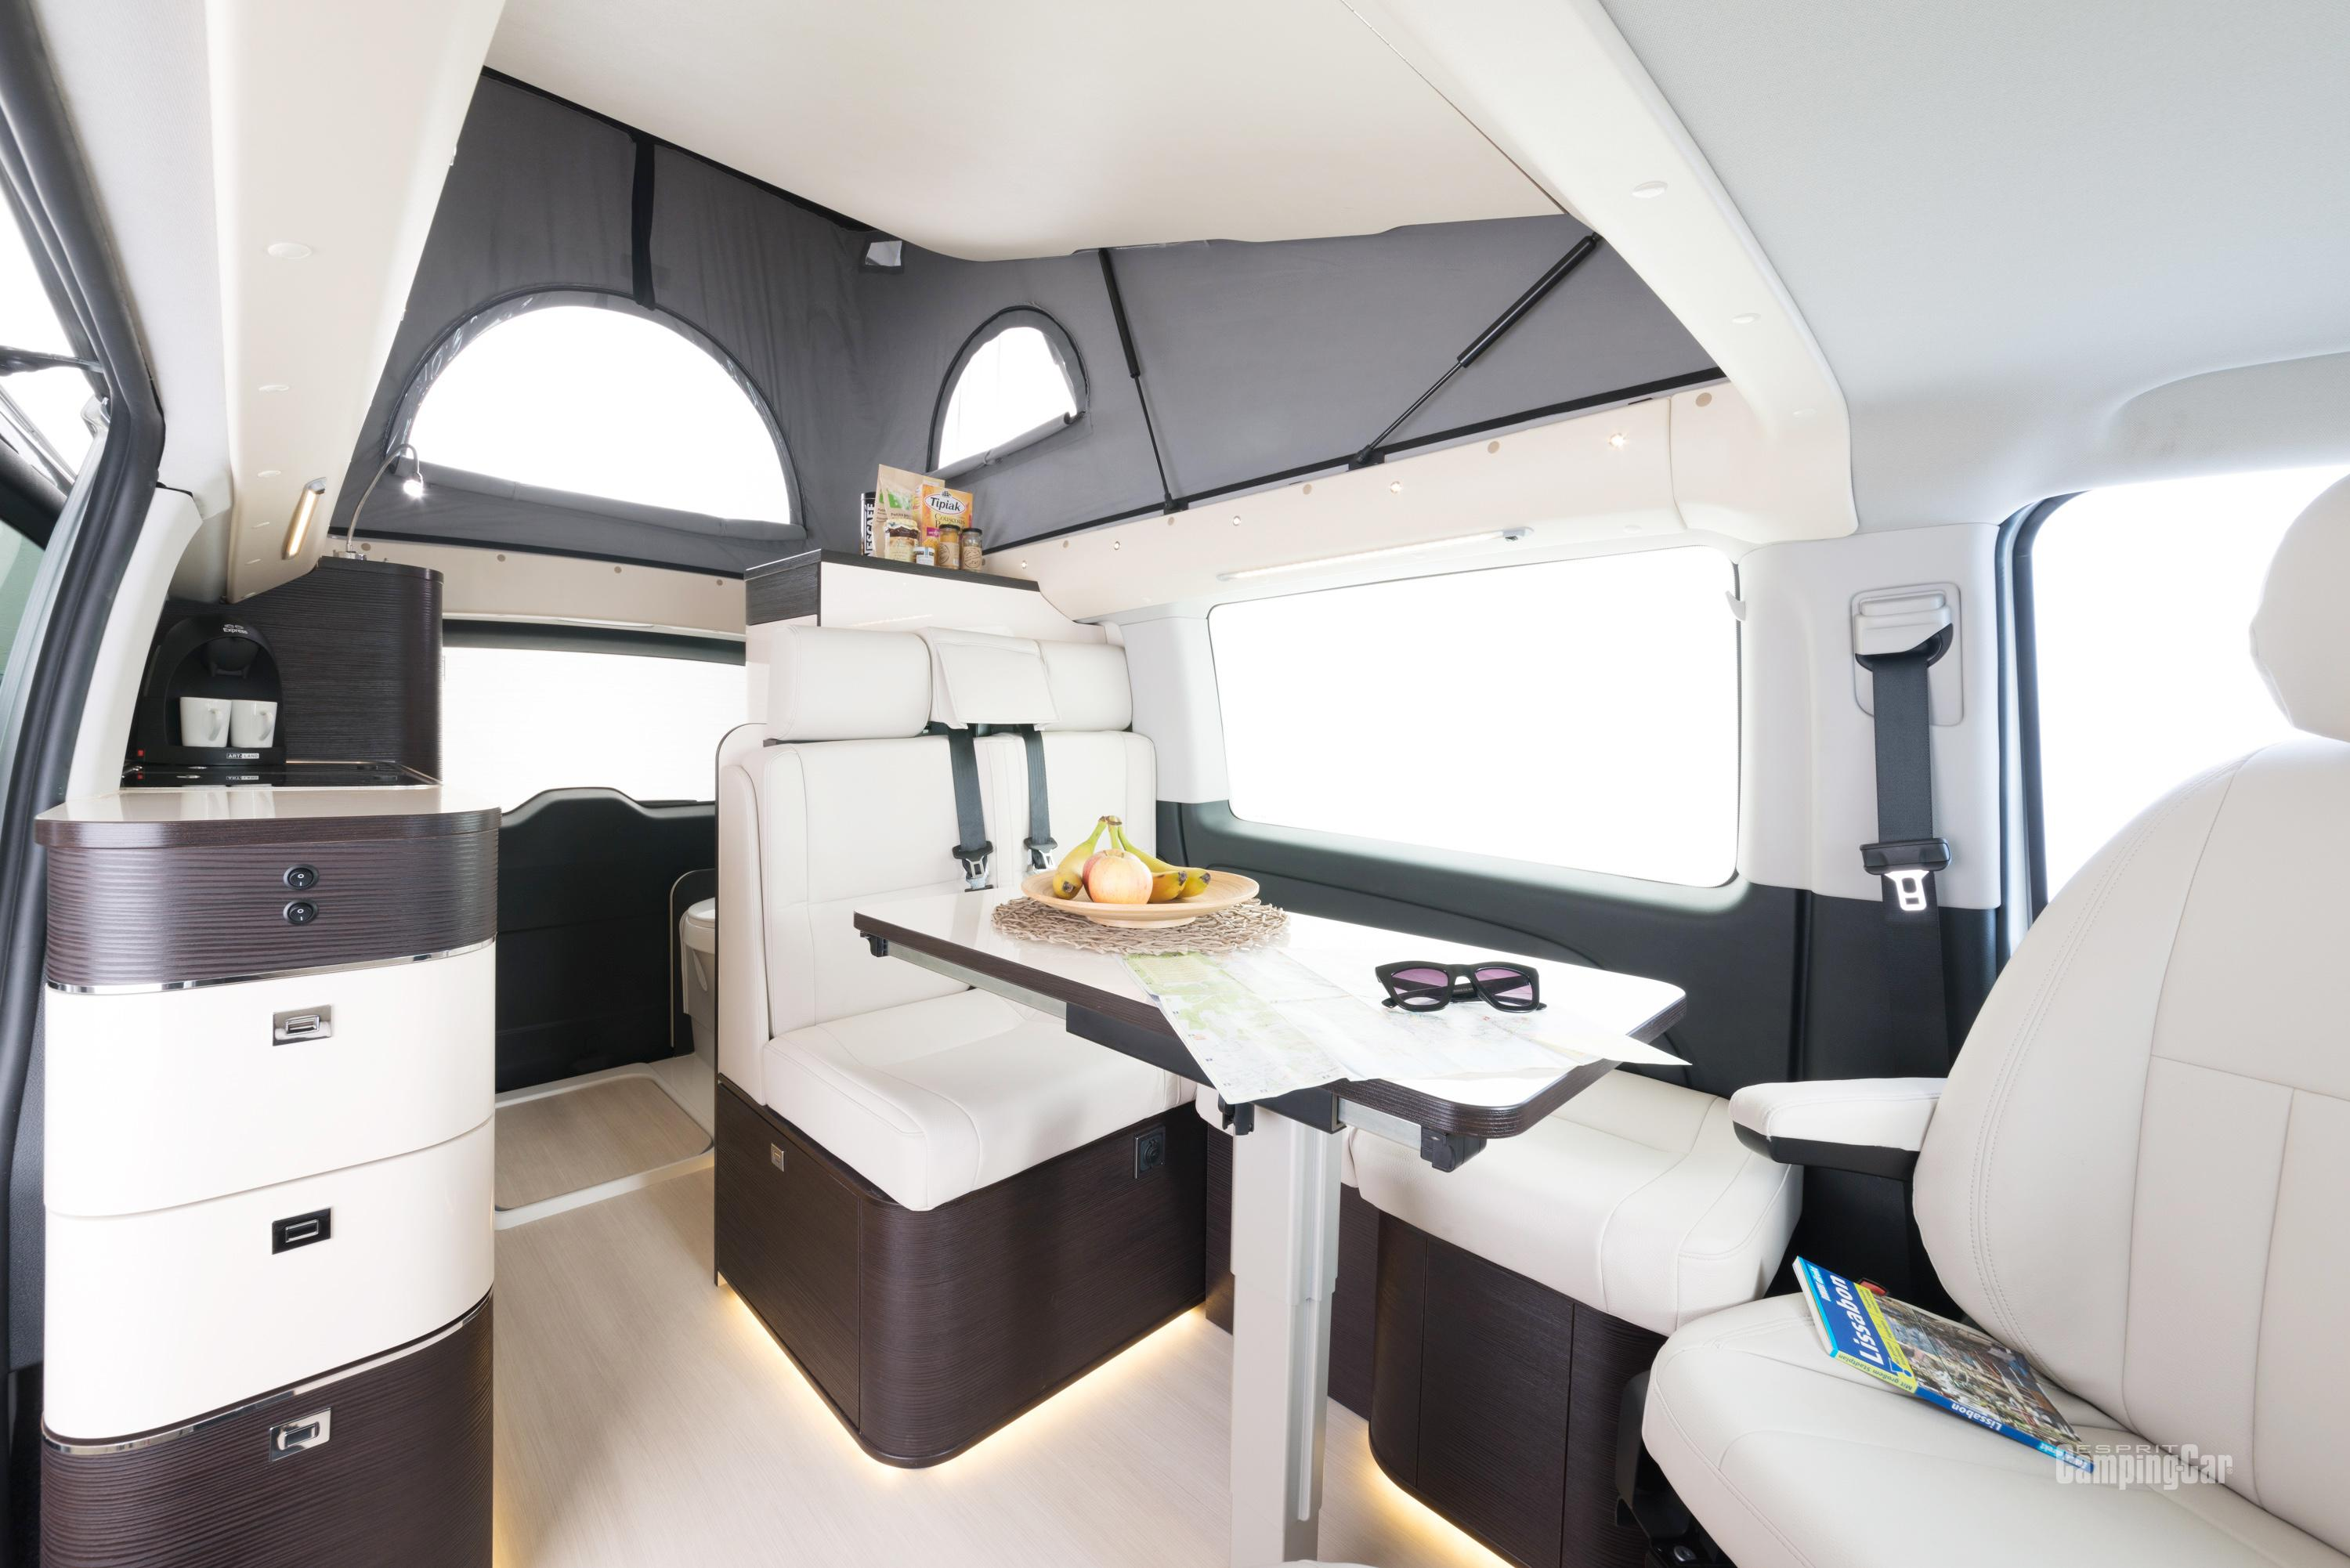 Salon du bourget 2016 camping car